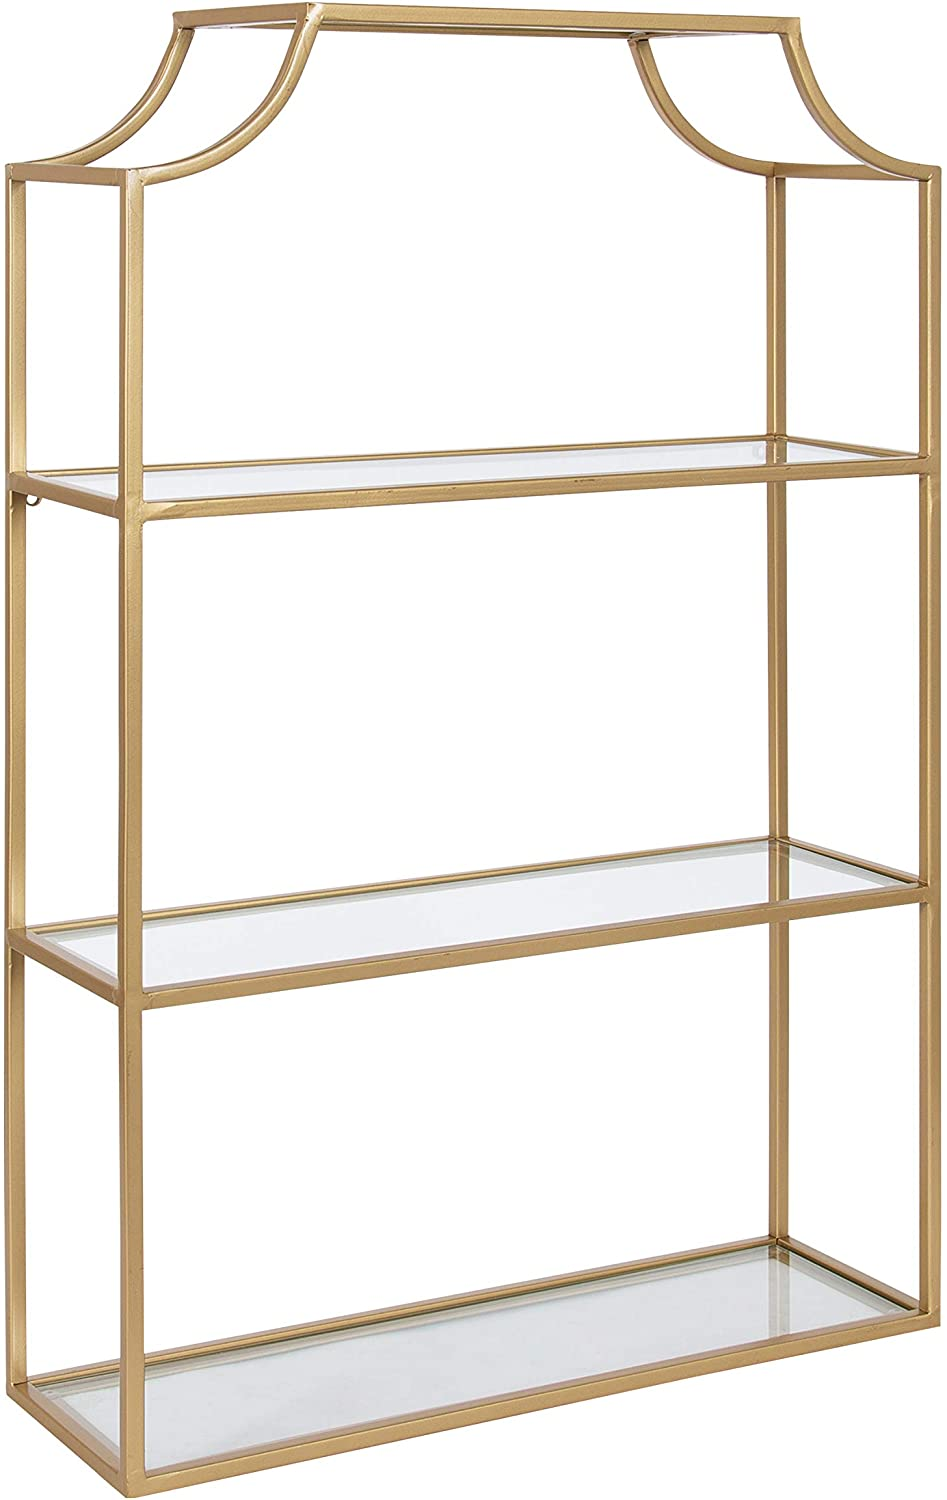 Kate and Laurel Today's only Ciel Glam 3-Tier Spring new work one after another Scalloped Wall 30 Shelf 20 x